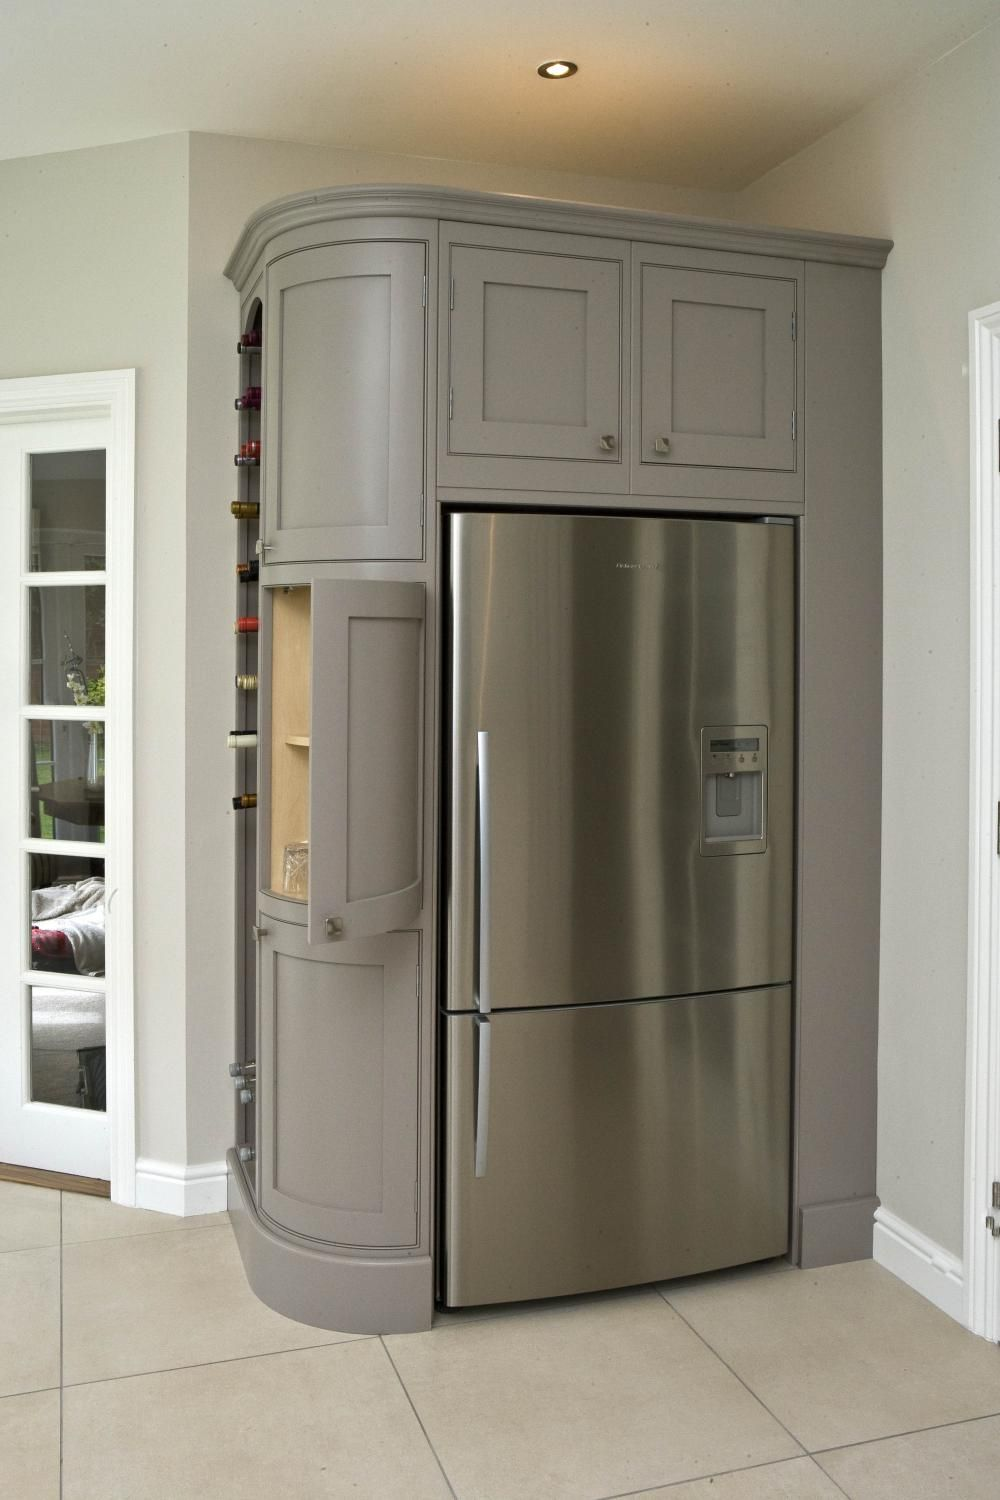 die besten 25 american fridge freezers ideen auf. Black Bedroom Furniture Sets. Home Design Ideas